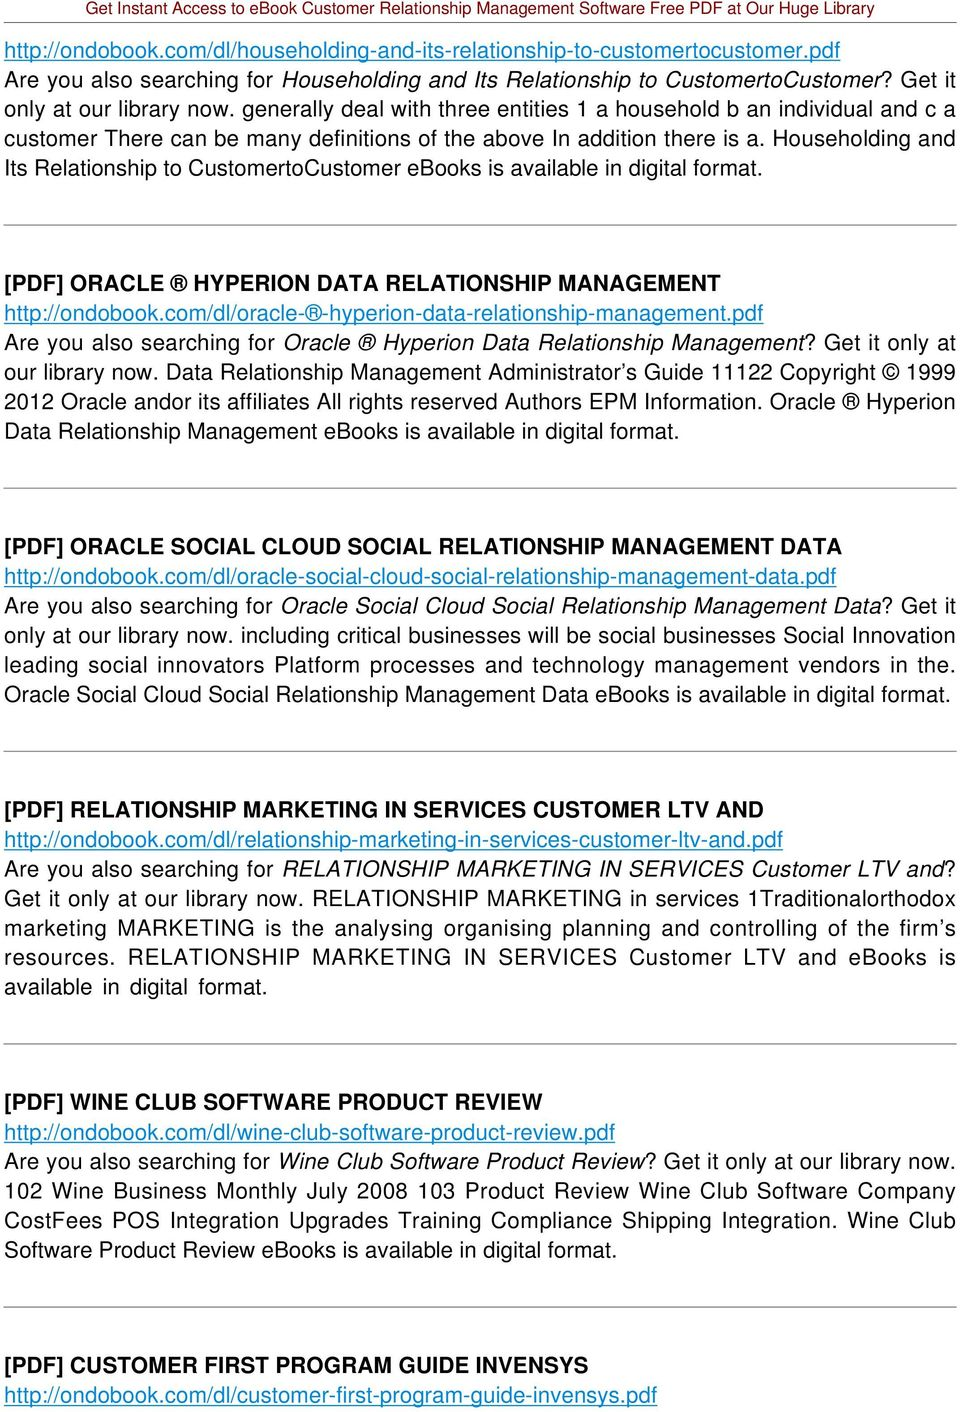 Householding and Its Relationship to CustomertoCustomer ebooks is available in digital [PDF] ORACLE HYPERION DATA RELATIONSHIP MANAGEMENT http://ondobook.